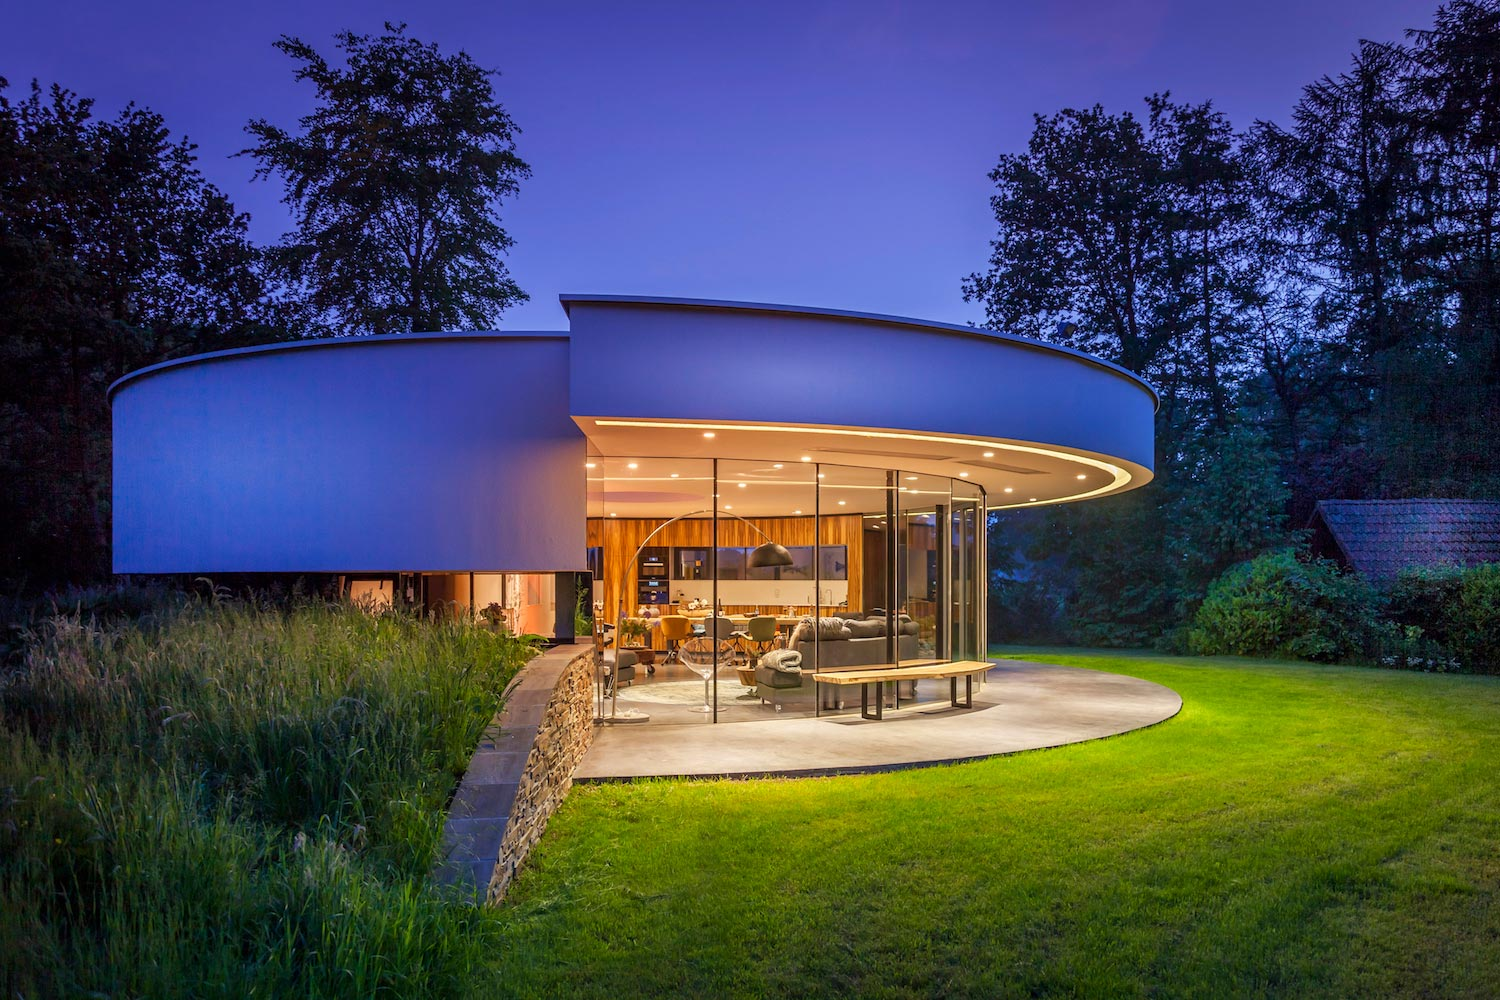 Tiny modern circular villa in a dutch forest by 123dv - Punch home design architectural series 18 ...